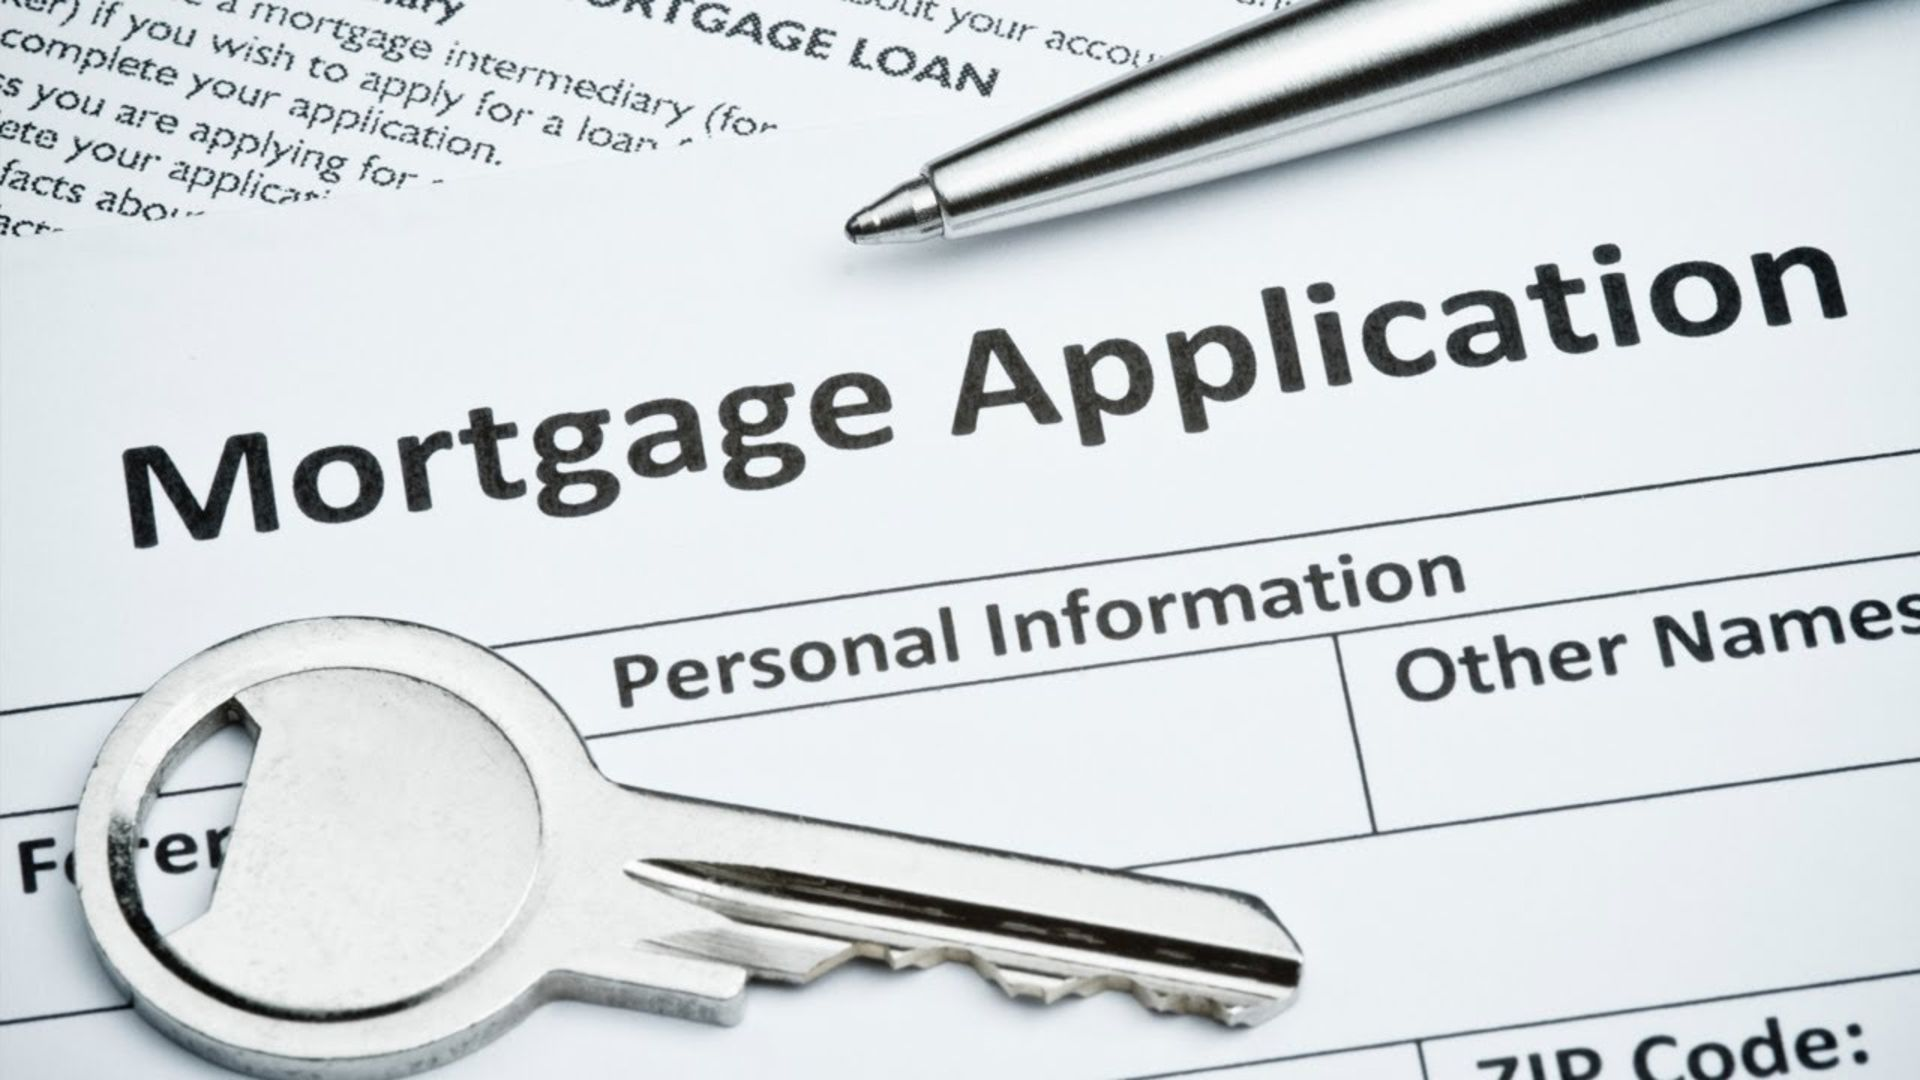 Quick Tips for Getting Started on Your Loan